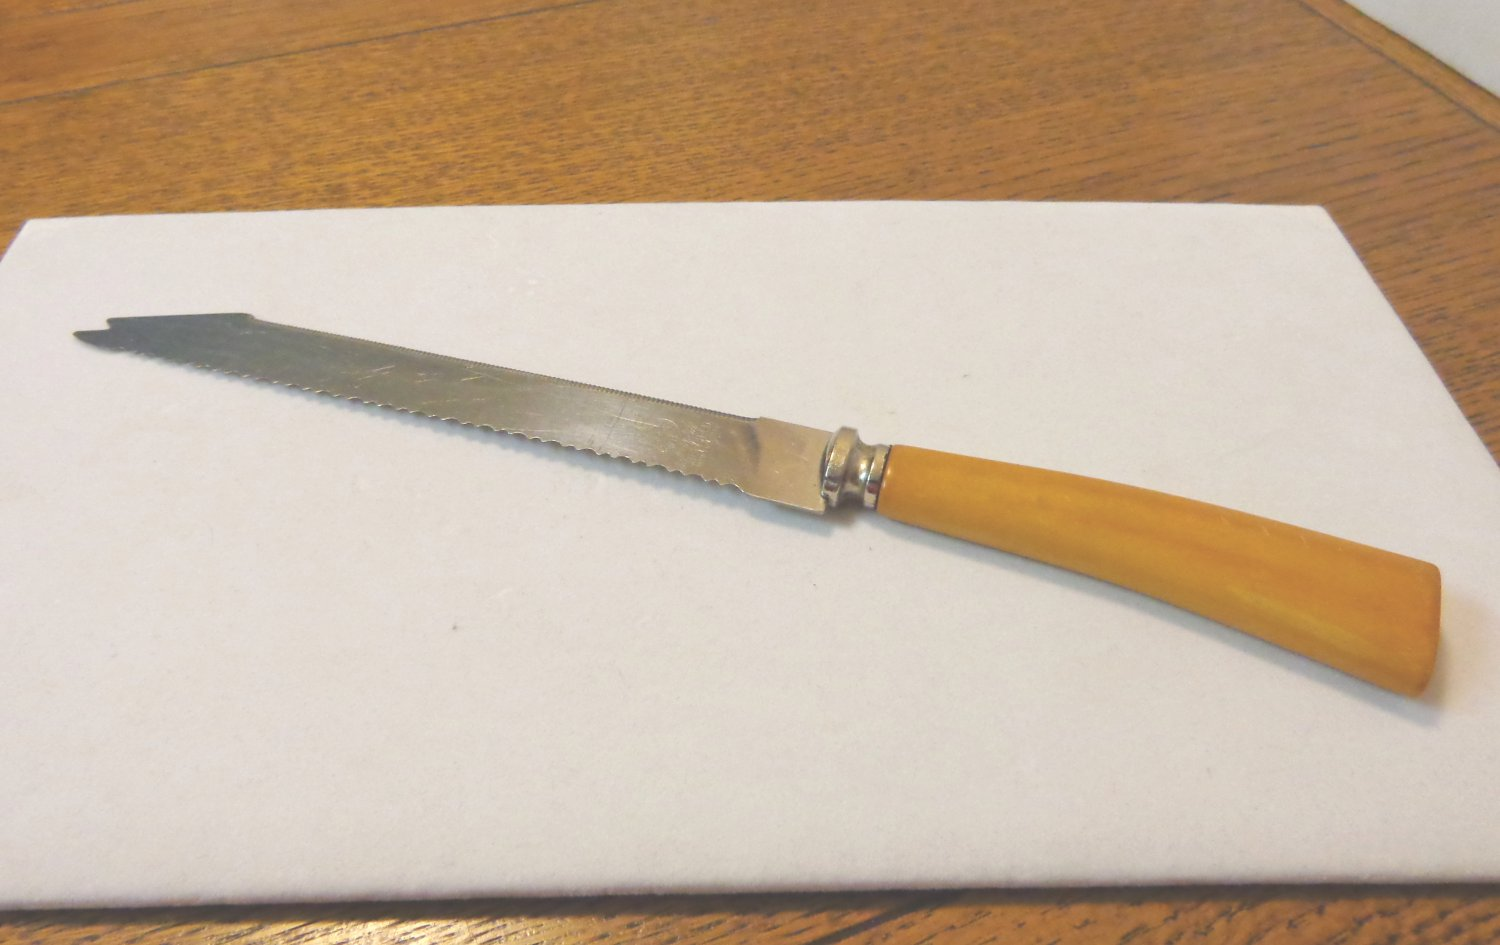 SCC Warranted Cutlery double serrated knife Bakelite handle stainless blade Made in Sheffield hc3346